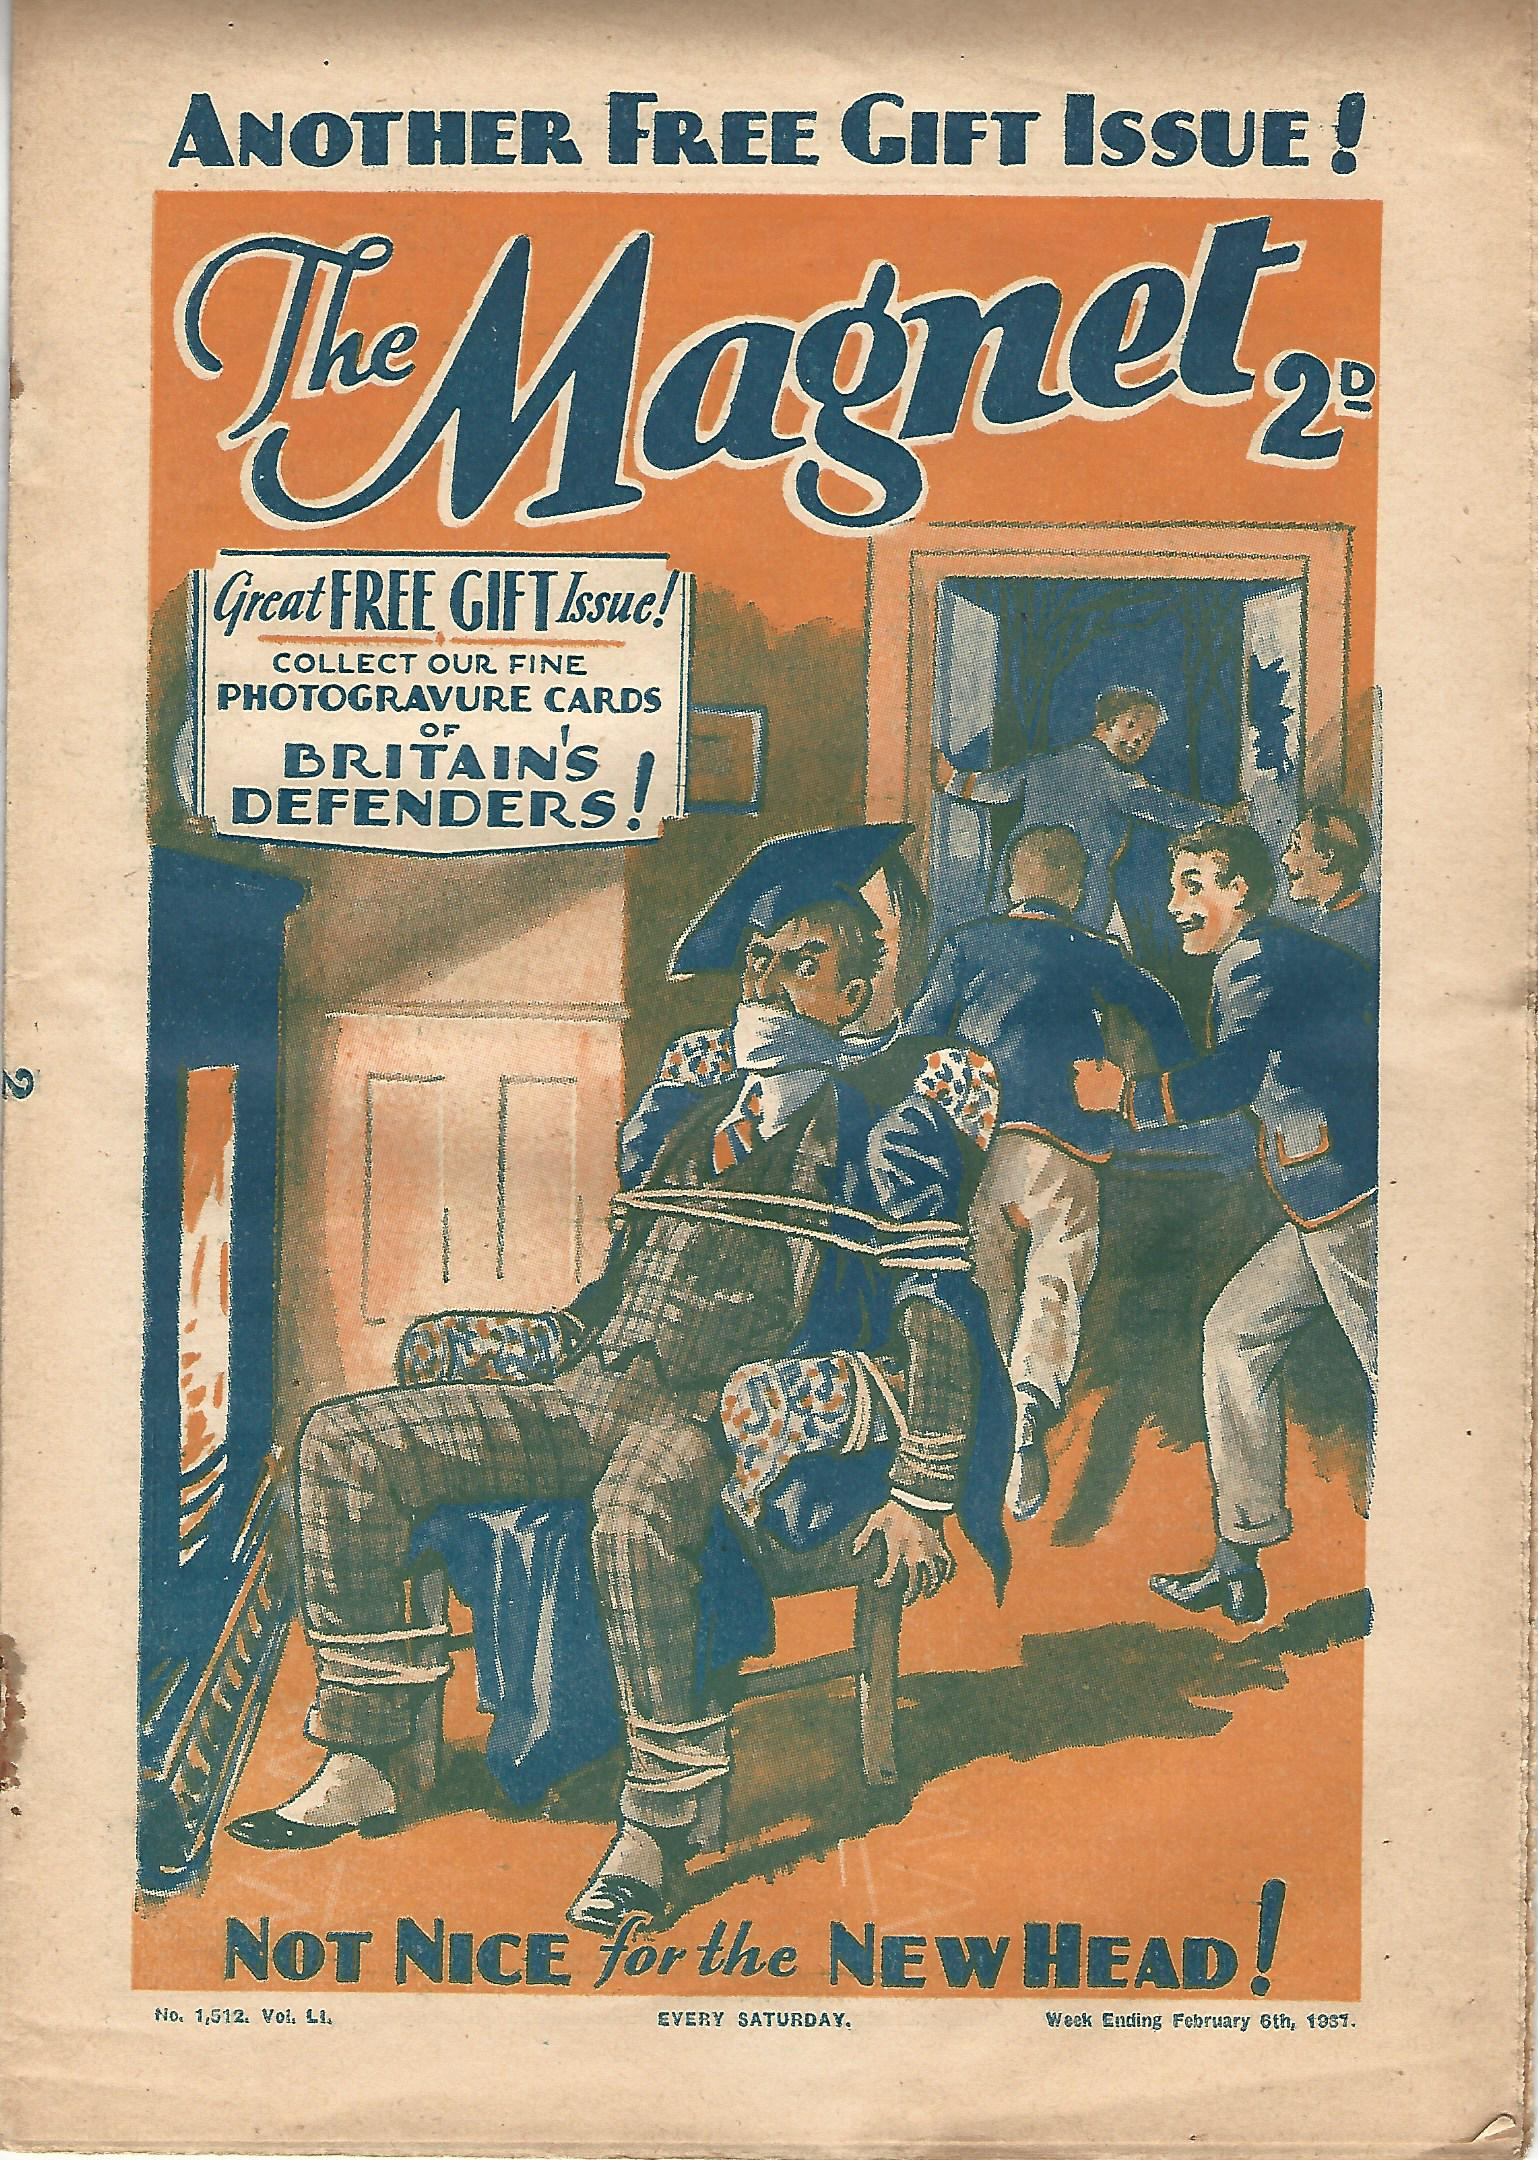 Image for The Magnet No.1512 Vol. LI.